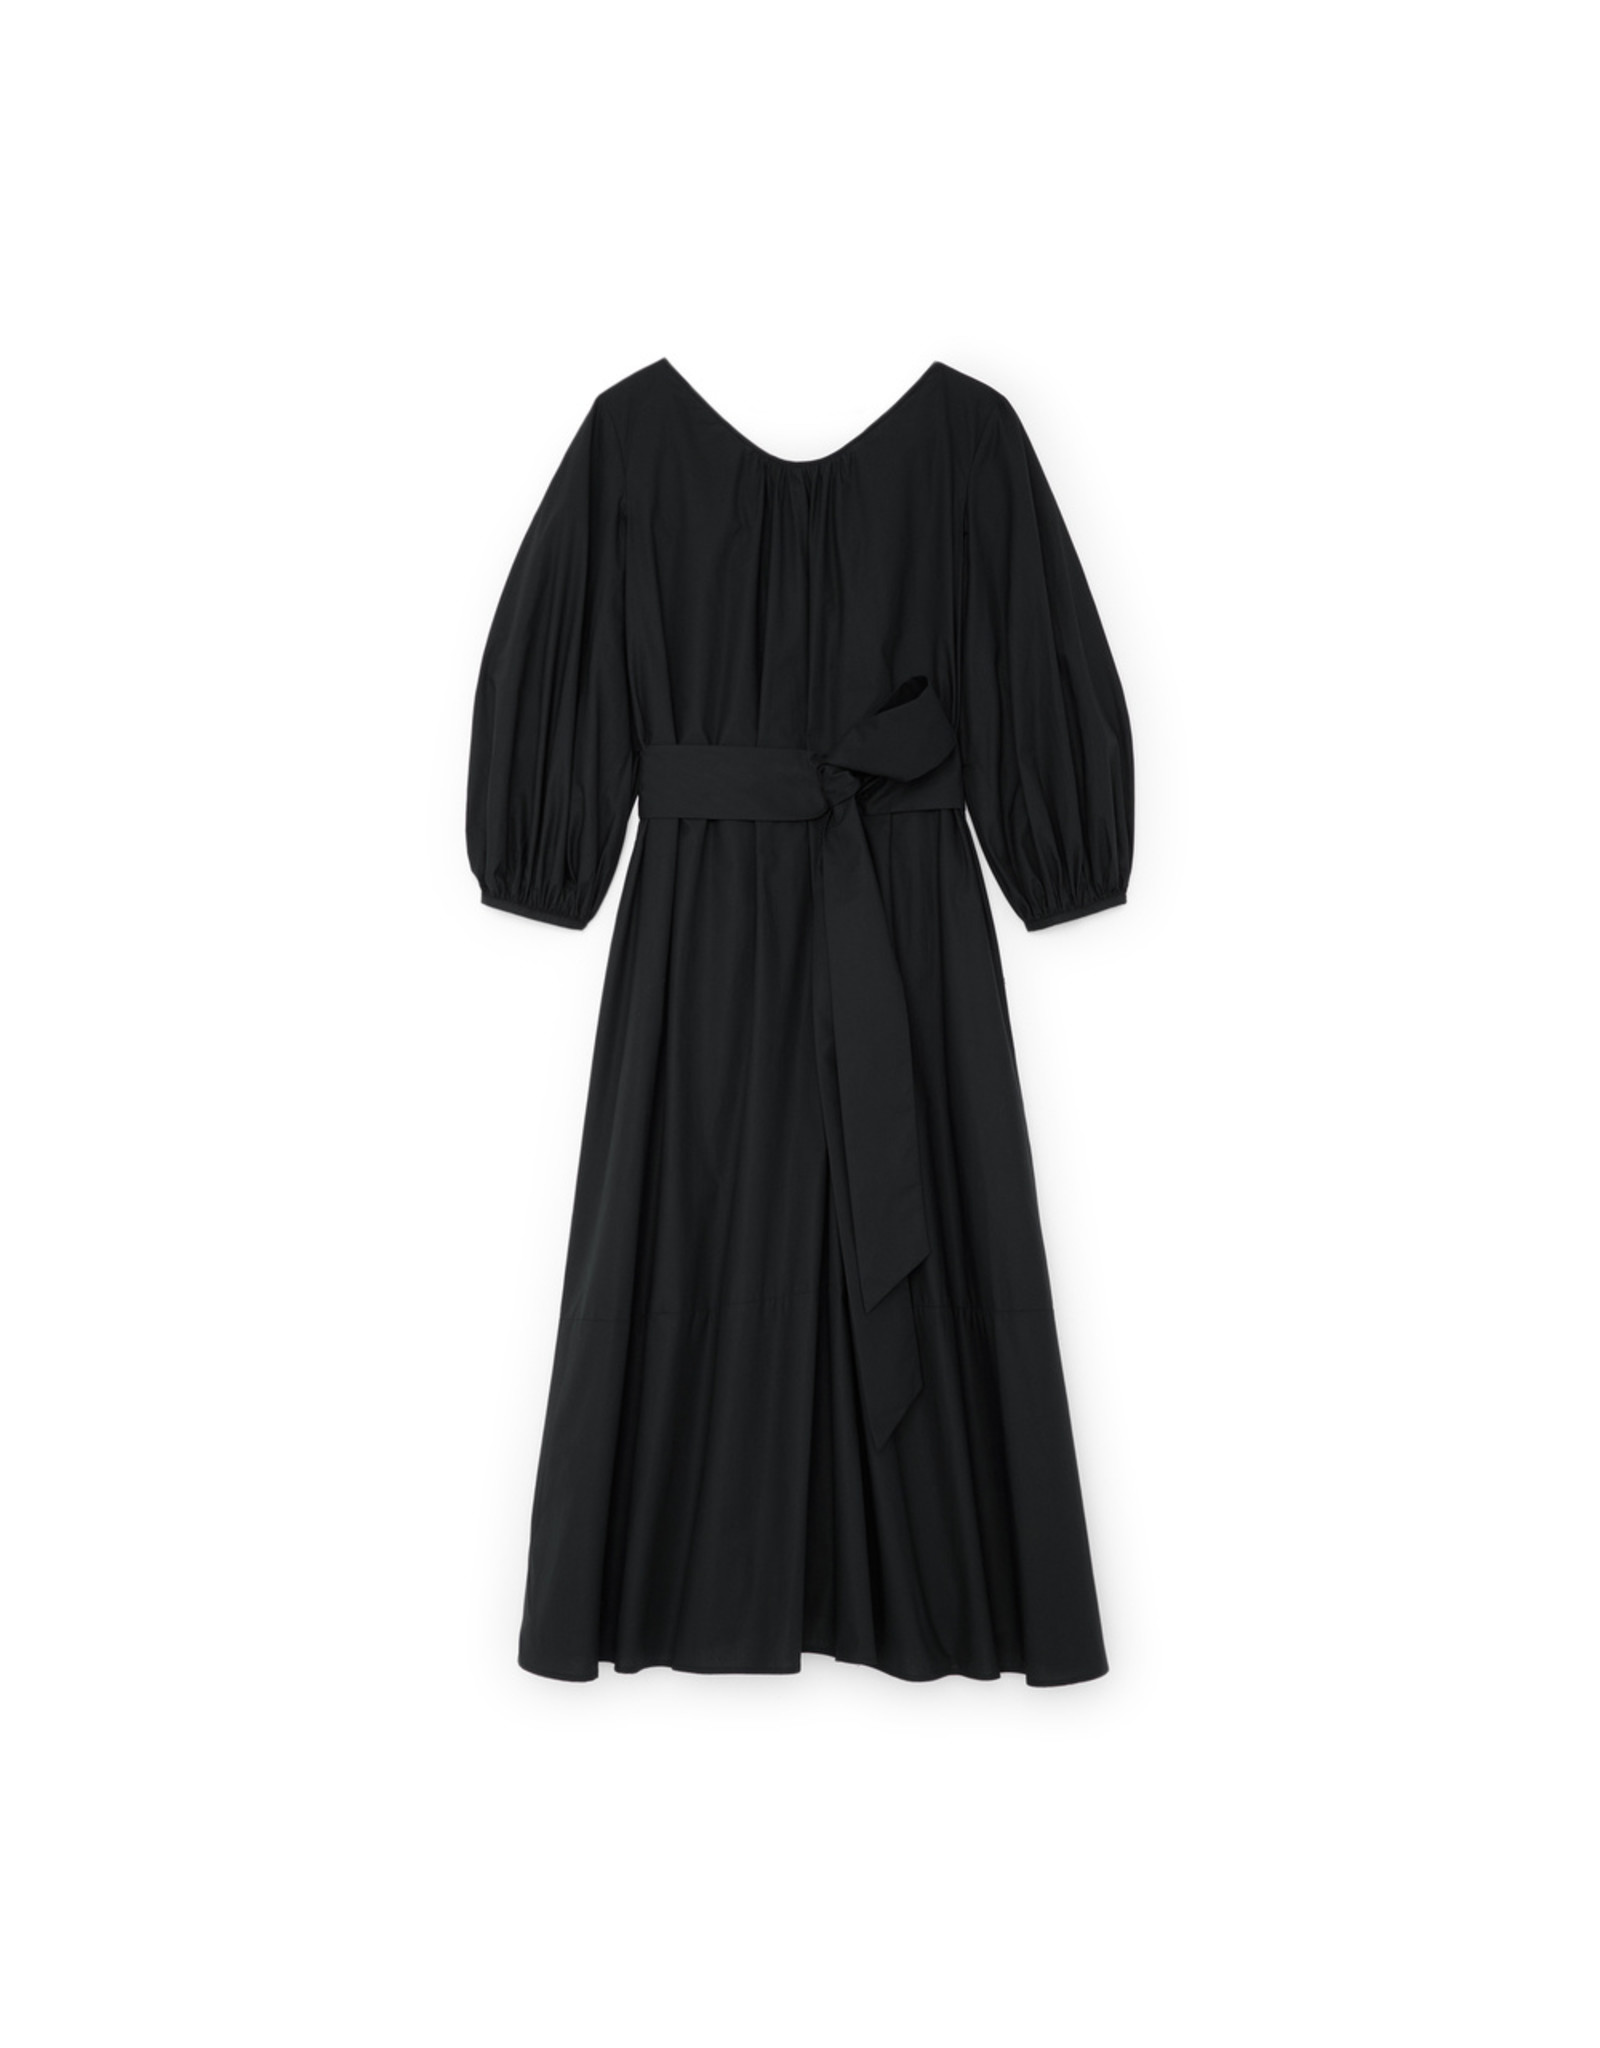 G. Label Amagansett Maxi Dress (Color: Black, Size: XS)